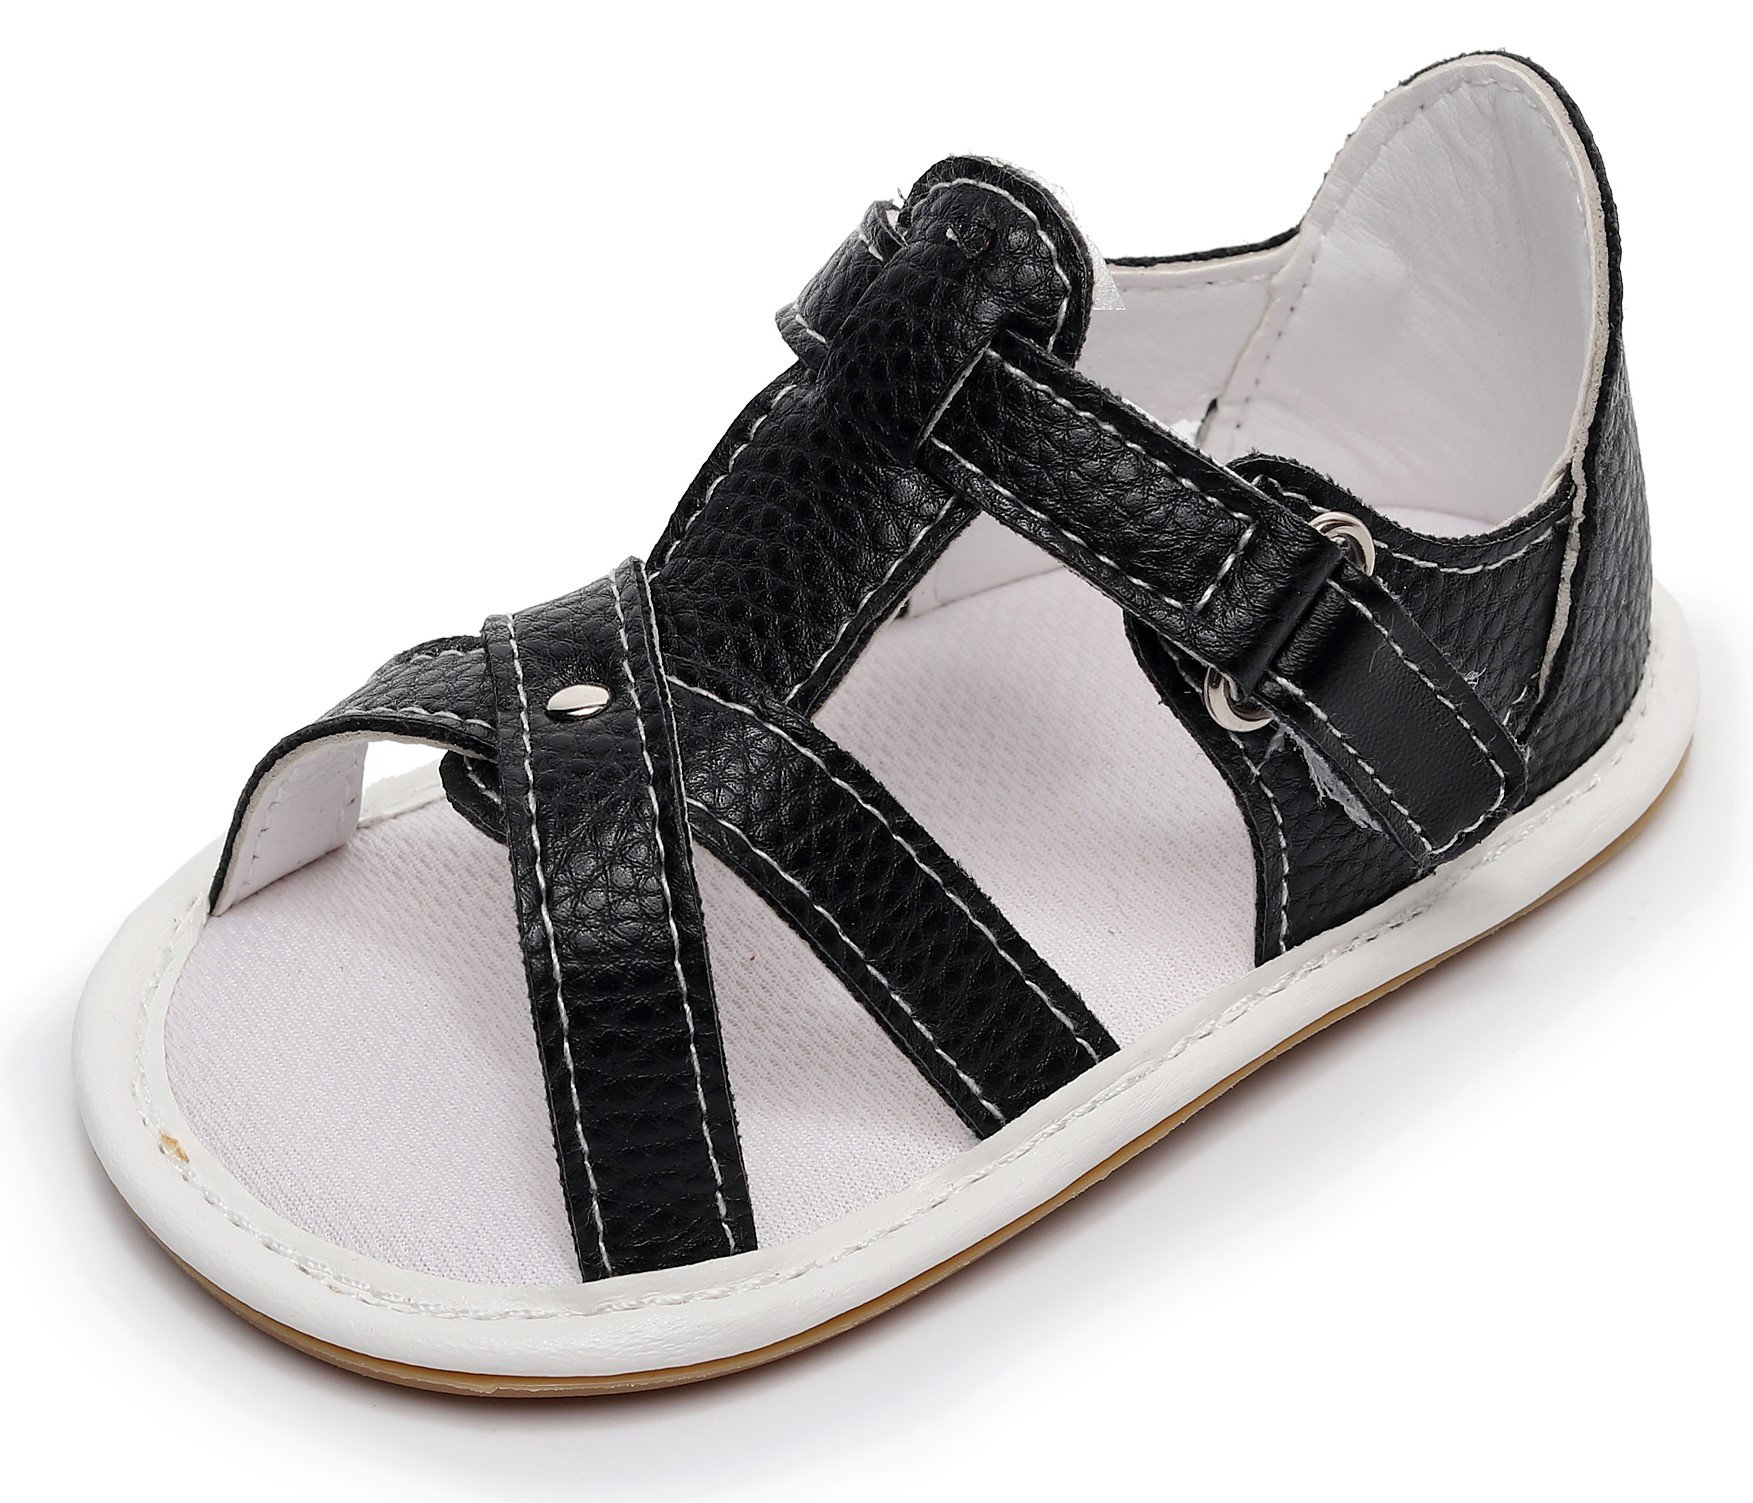 """b8f97bd82e5cf7 Bebila Rubber Sole Baby Girl Summer Shoes - Baby Boys Sandals with Pu  Leather First Walkers Toddler Moccasins(US 3.5 4.33"""" 0-3months"""